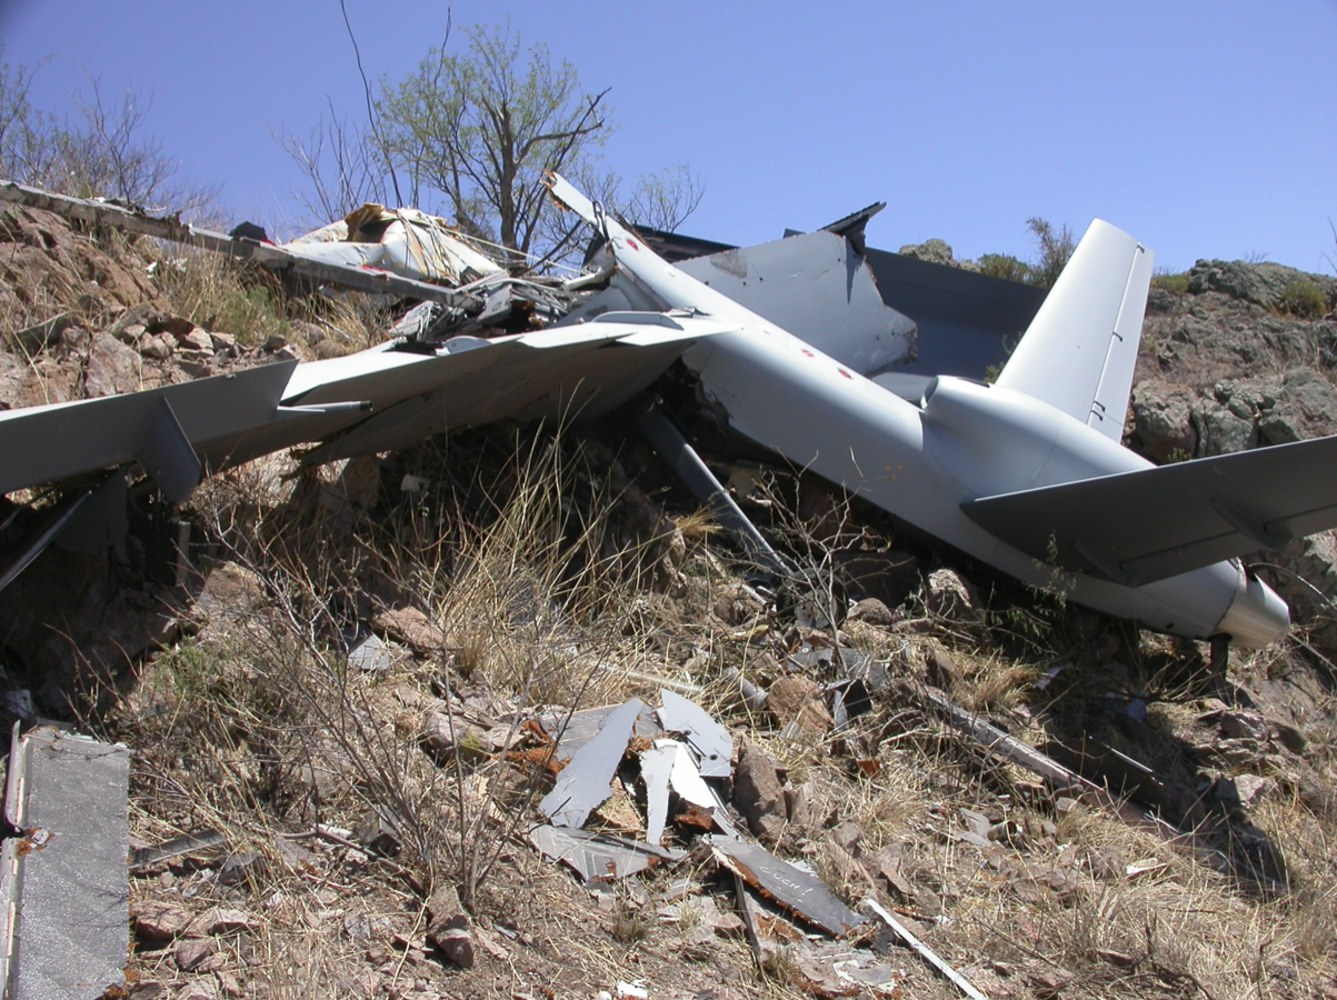 The Remains Of A Predator B Reaper Drone Sprinkled Across Arizona